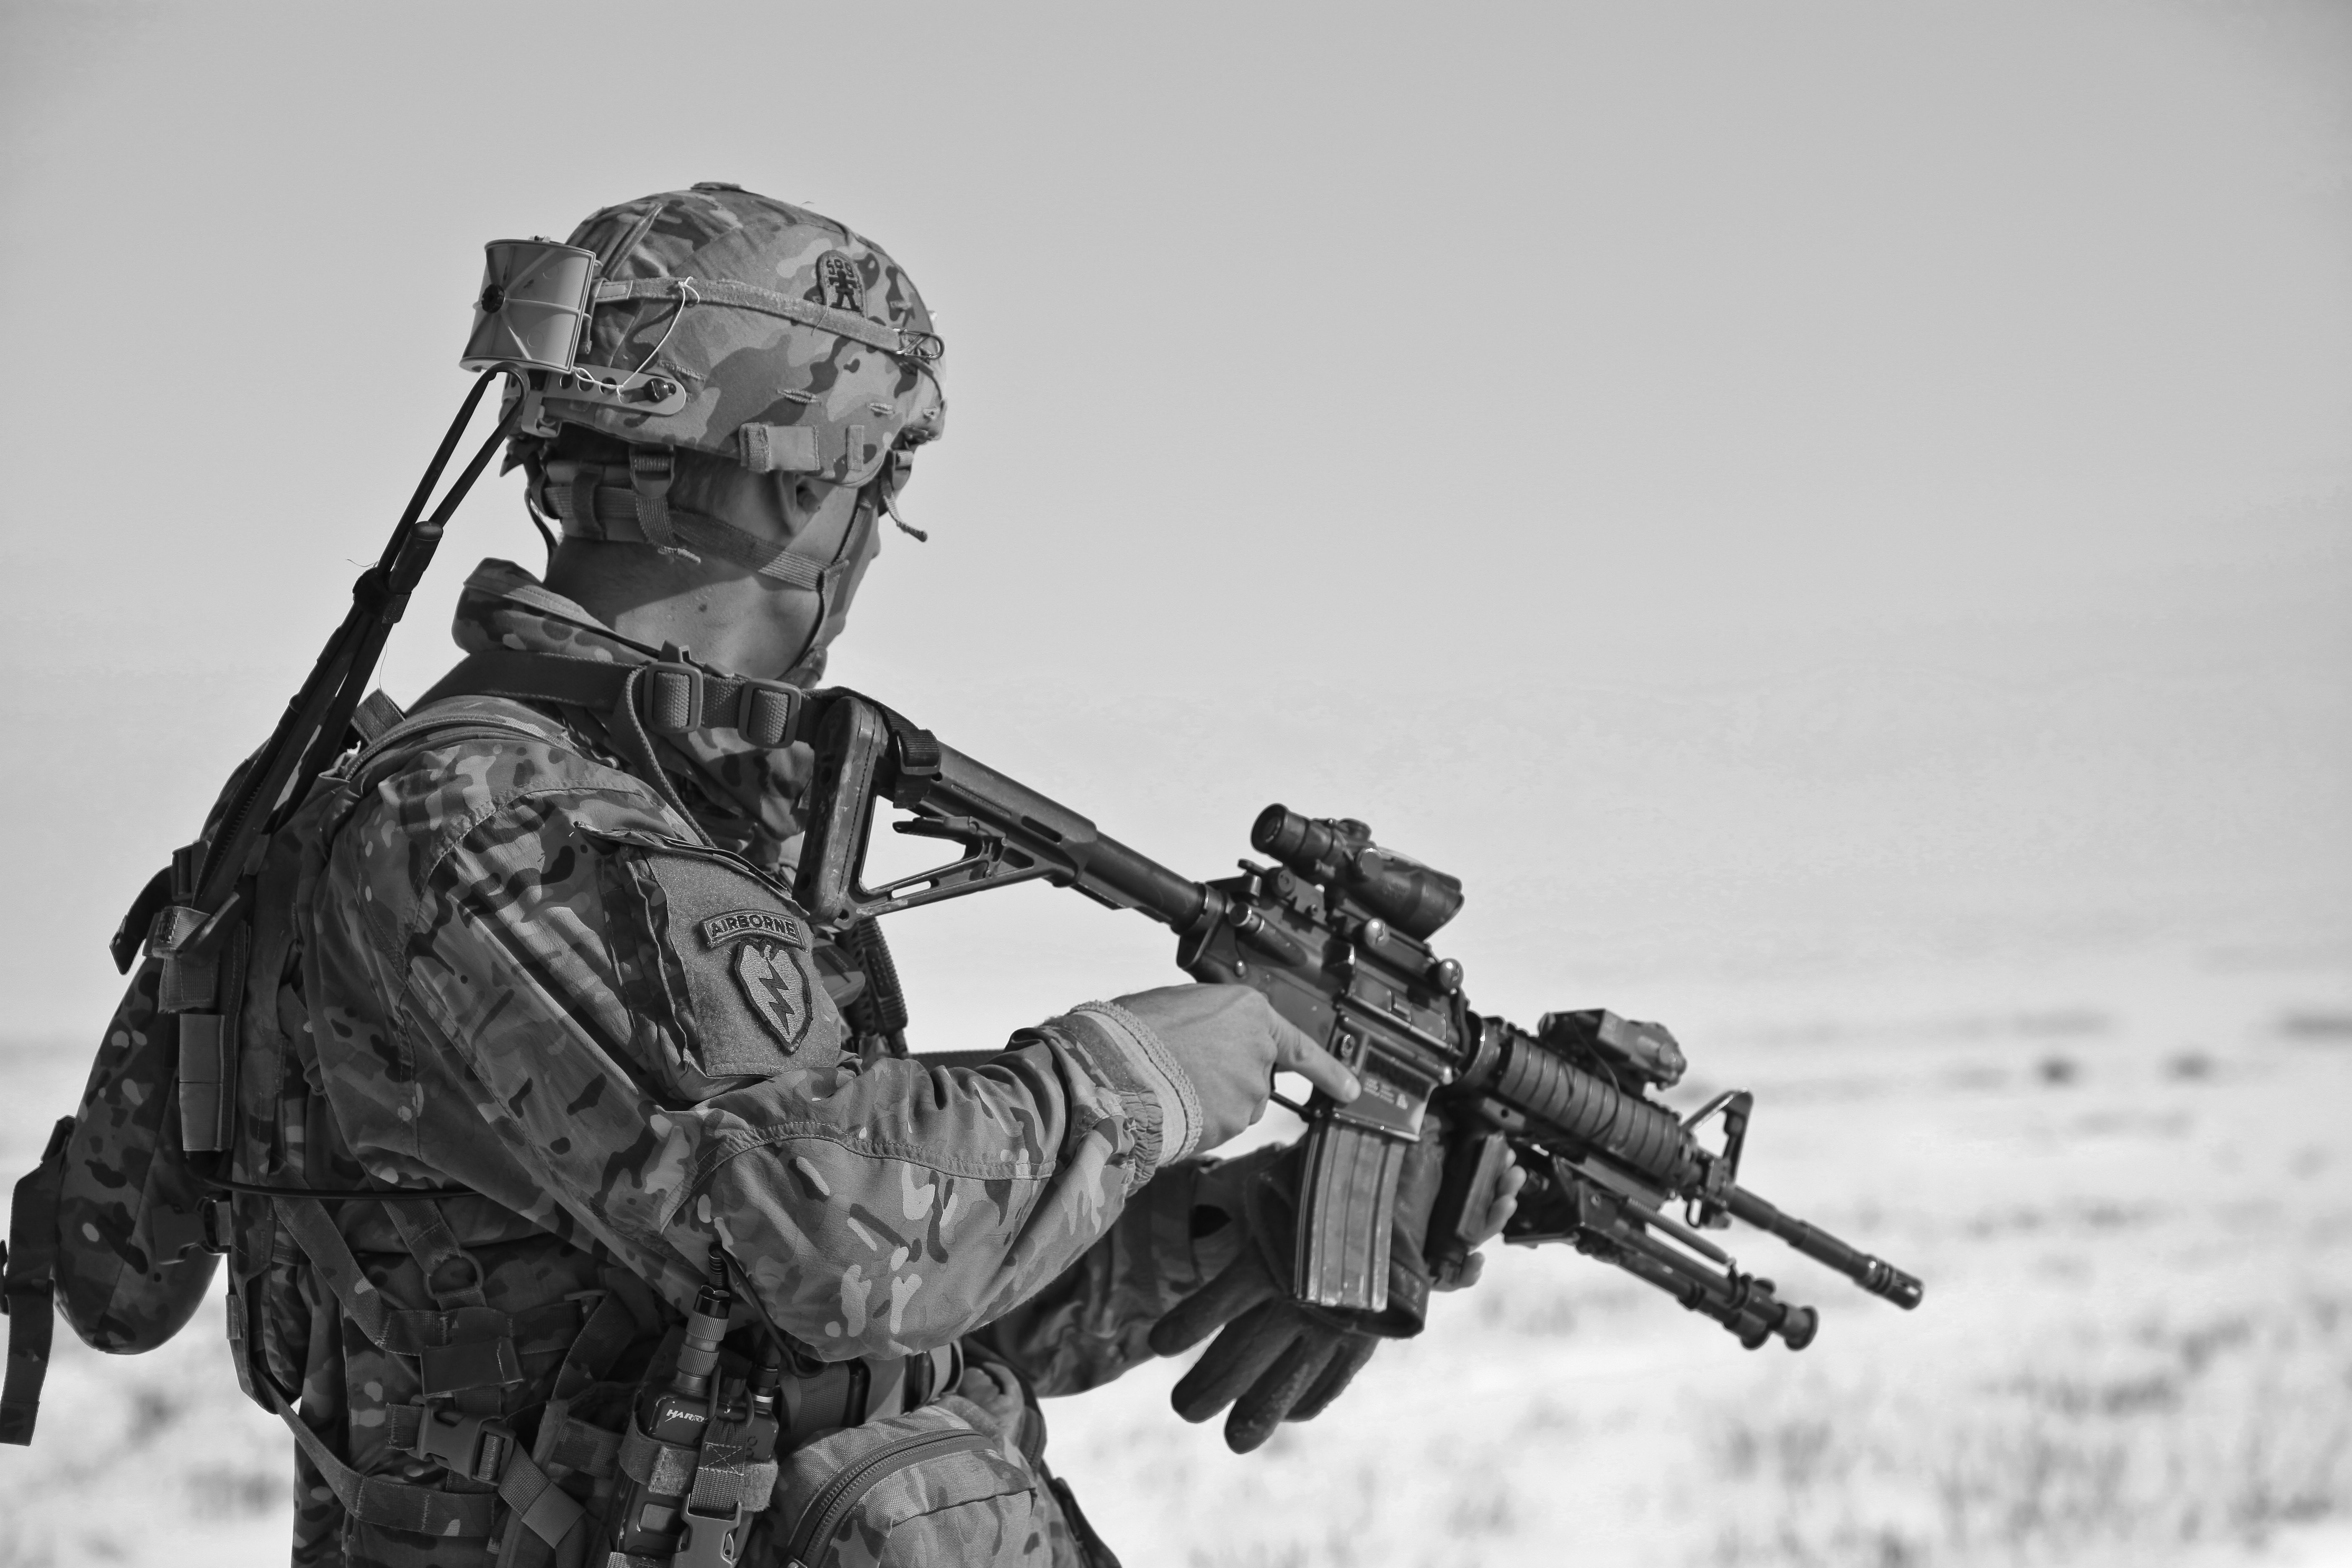 soldier-uniform-army-weapon-41161-3